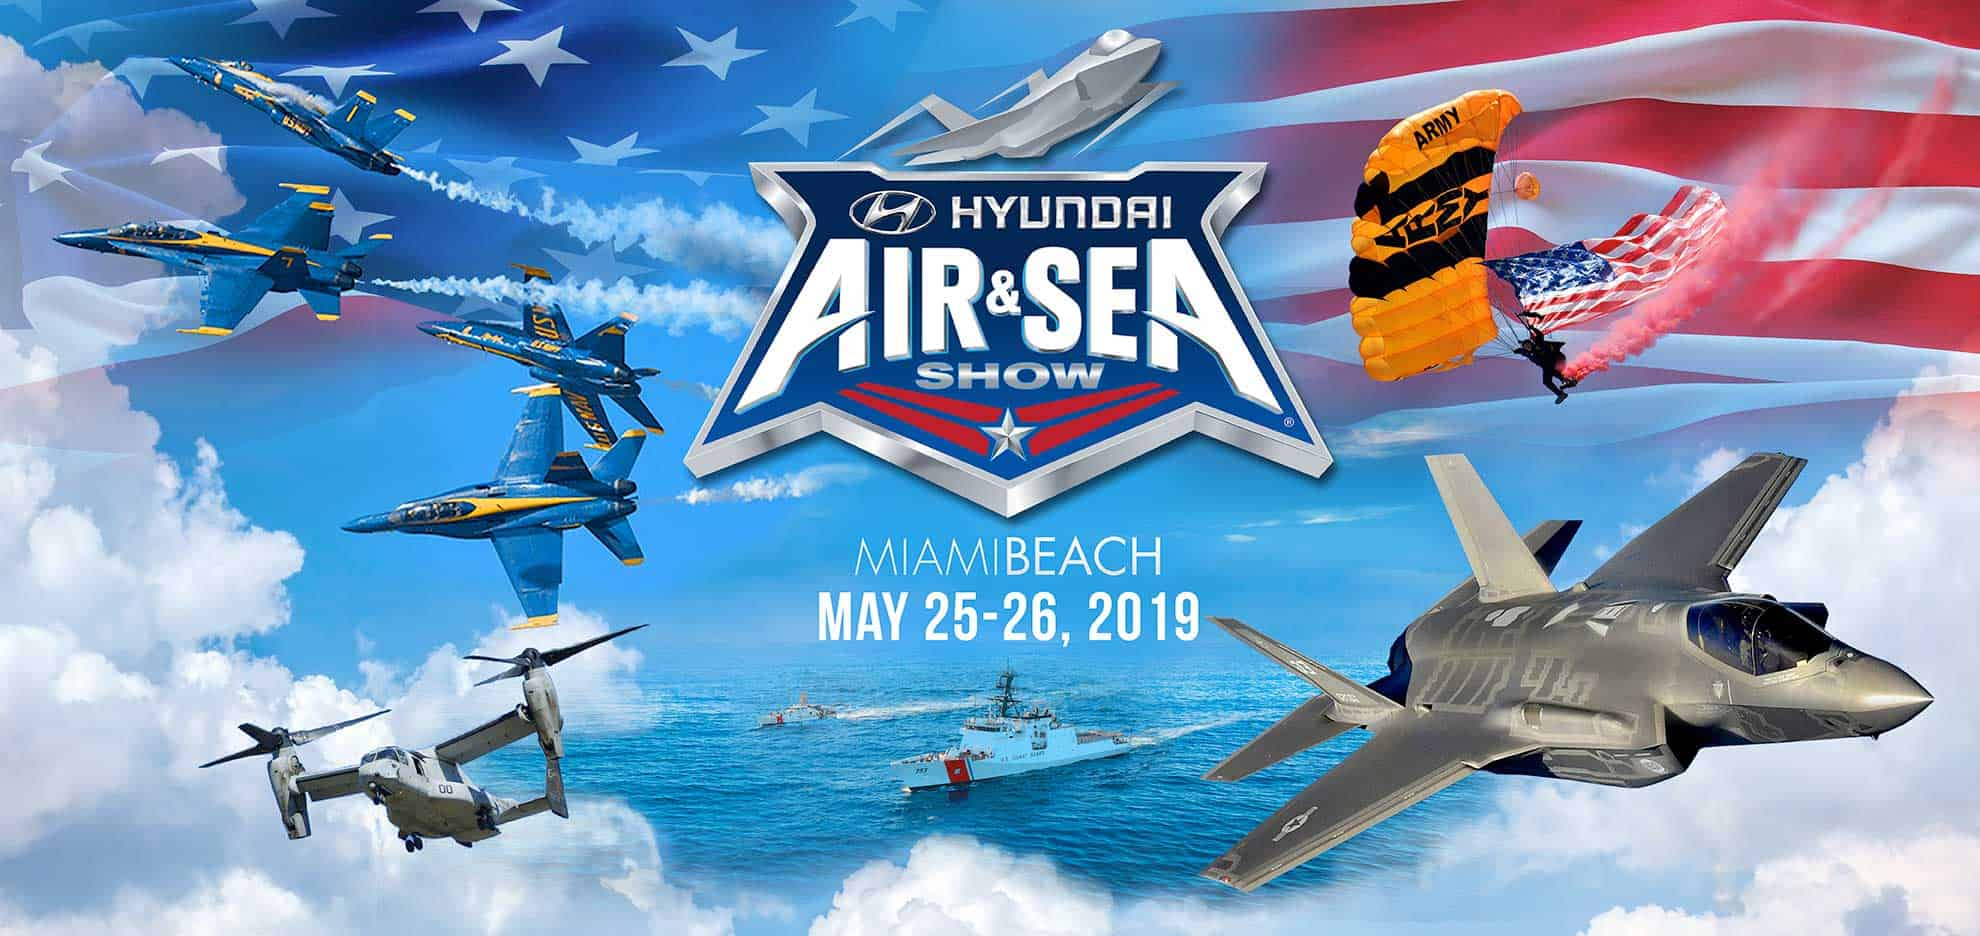 Hyundai Air & Sea Show